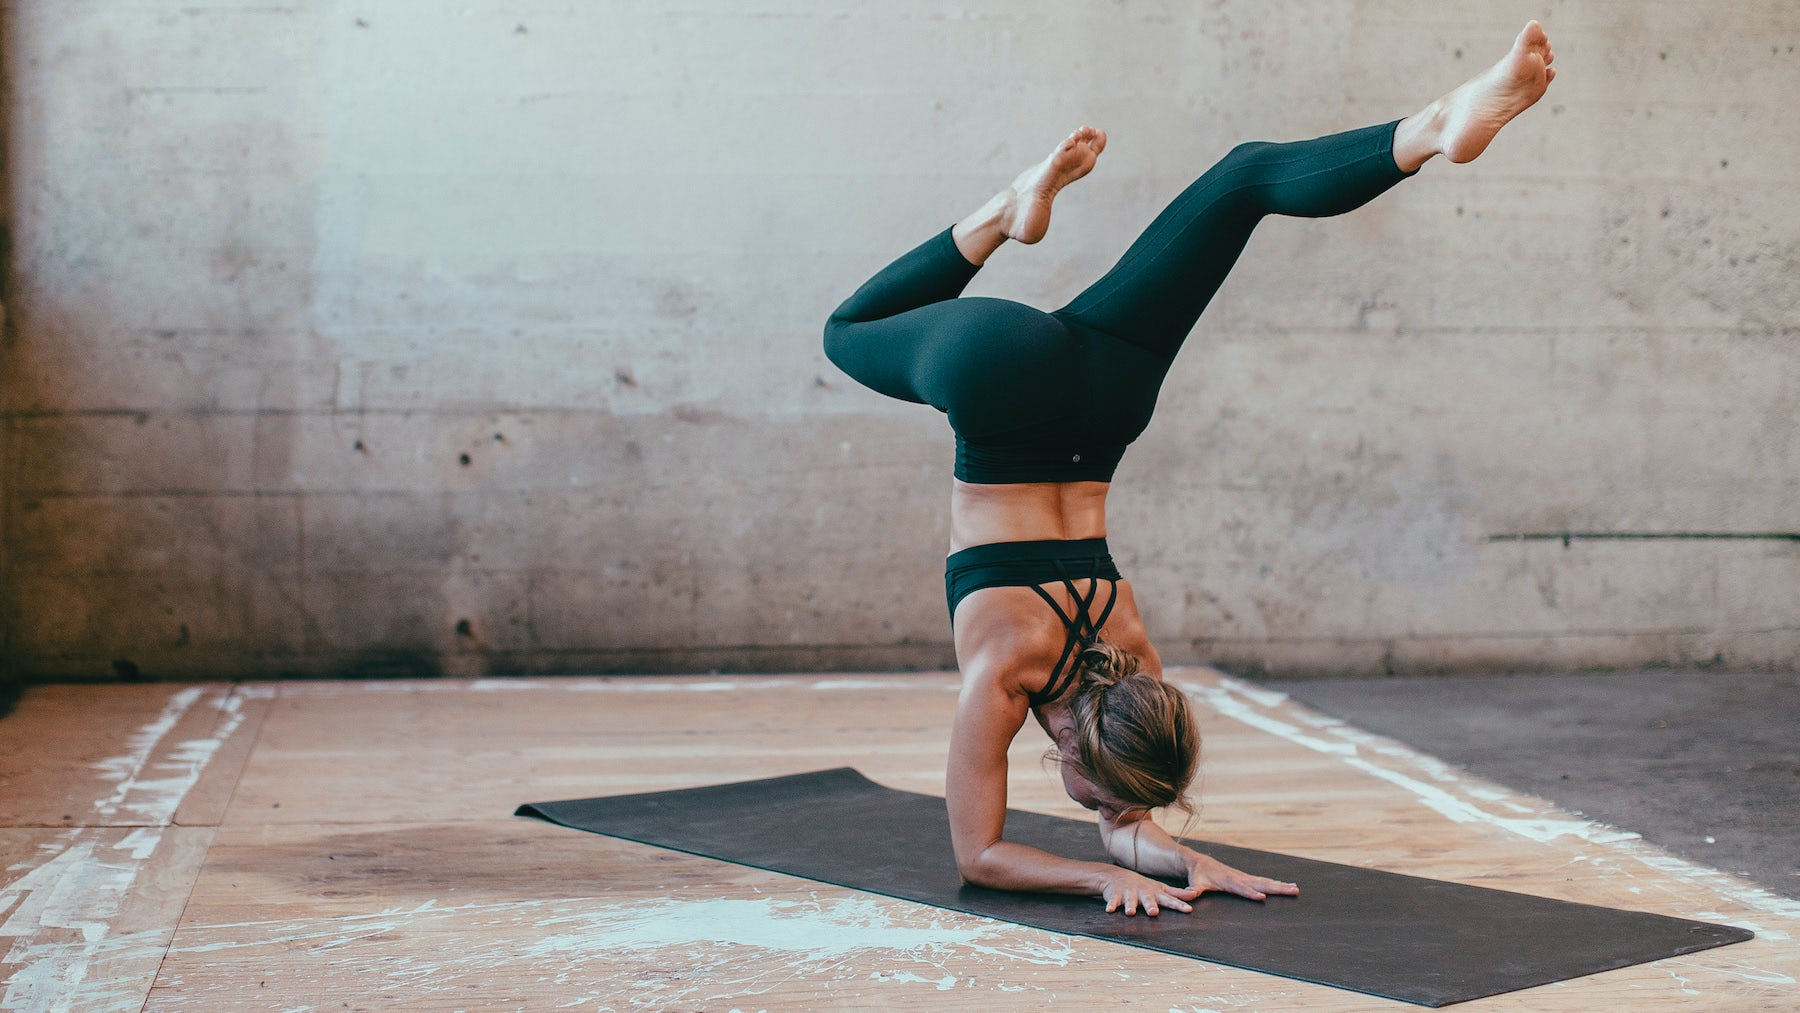 Lululemon Rallies After Dispelling Fears of an Athleisure Bubble